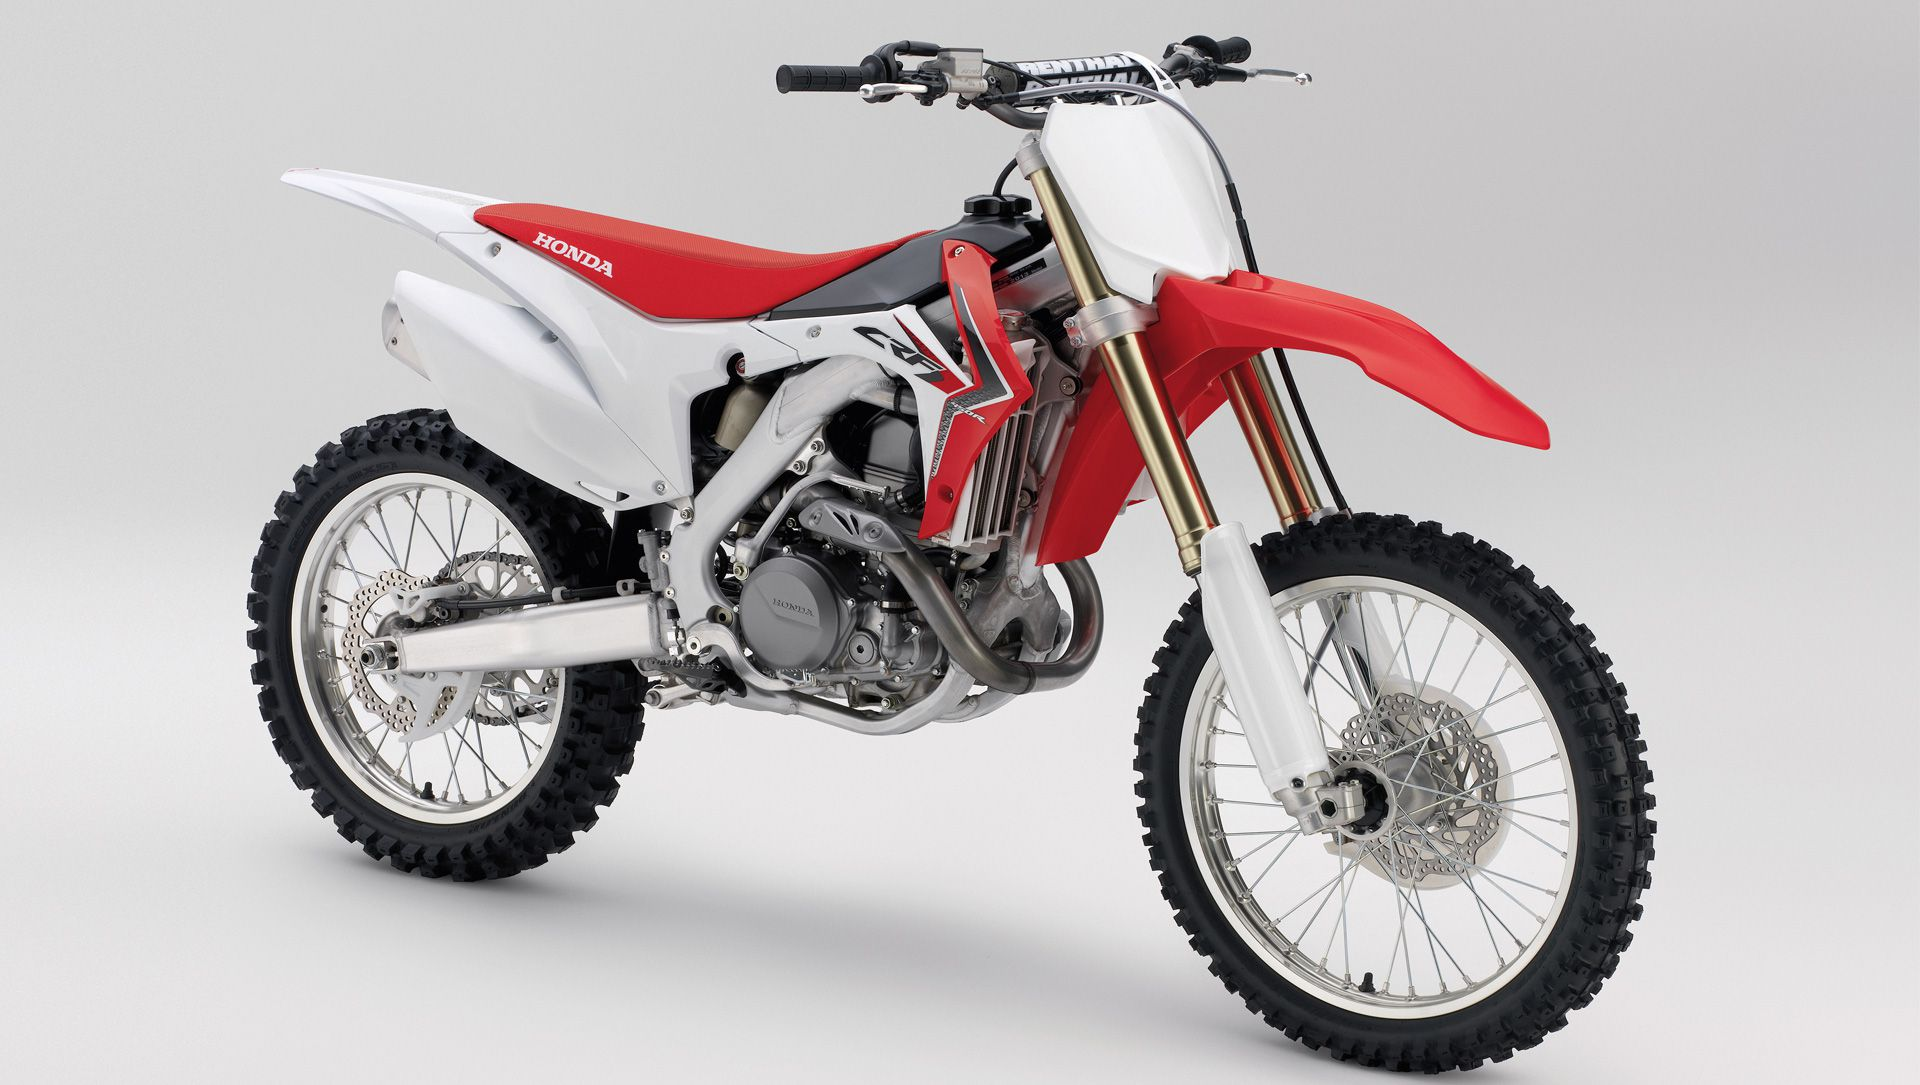 Honda Off Road Range Is Enhanced With Two Upgraded Models And One All New